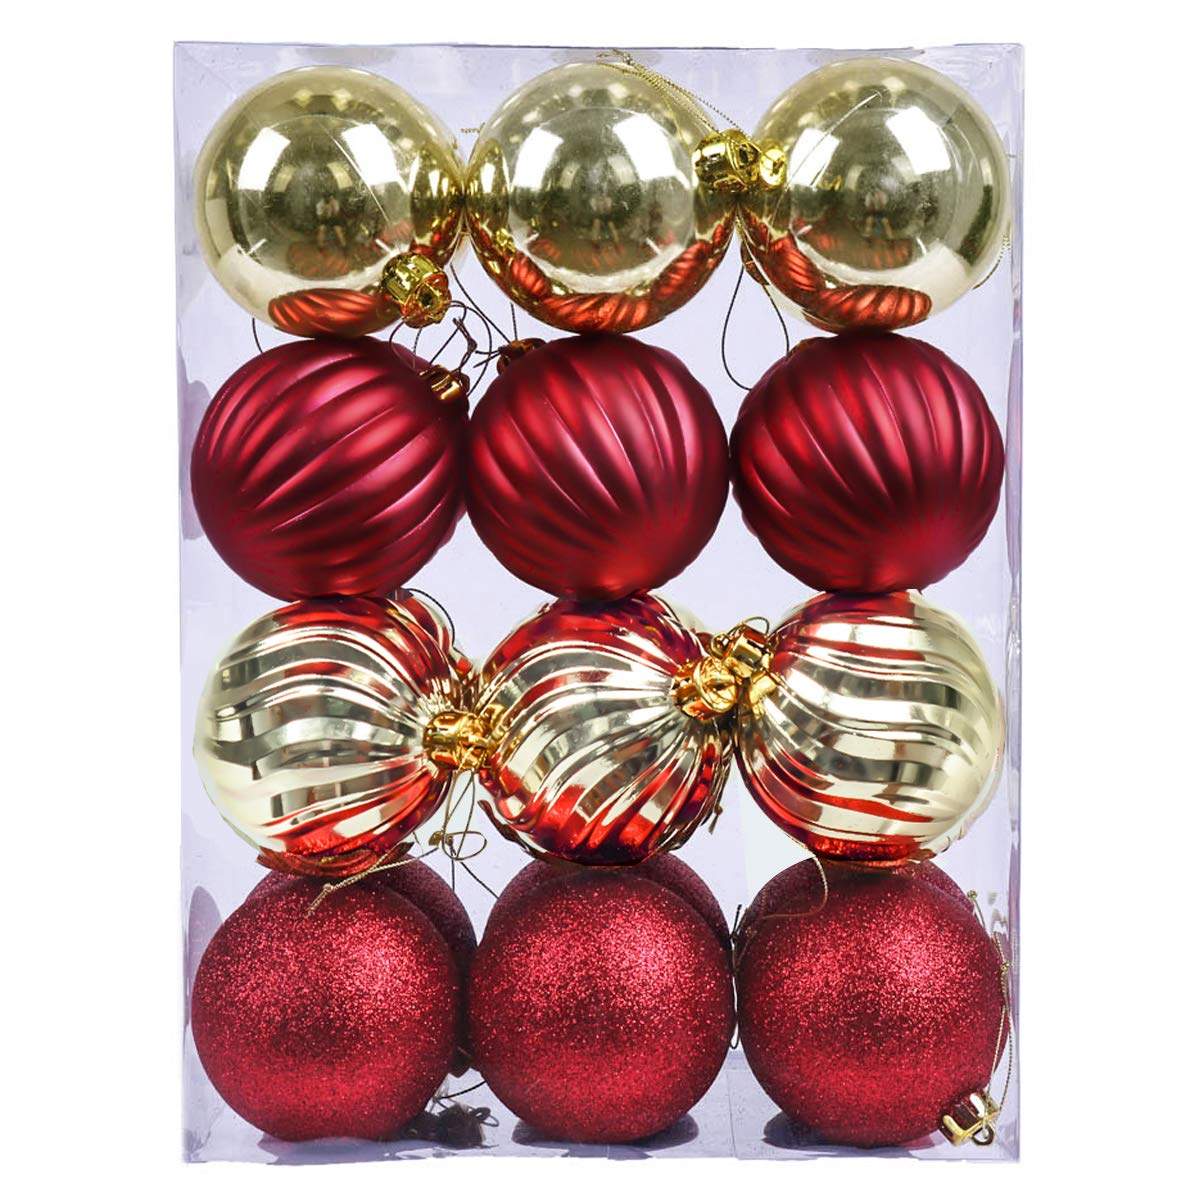 V&M VALERY MADELYN 24ct 80mm Luxury Red Gold Shatterproof Christmas Ball Ornaments Decoration with String Pre-Tied,Themed with Tree Skirt(Not Included) EG0101-0022